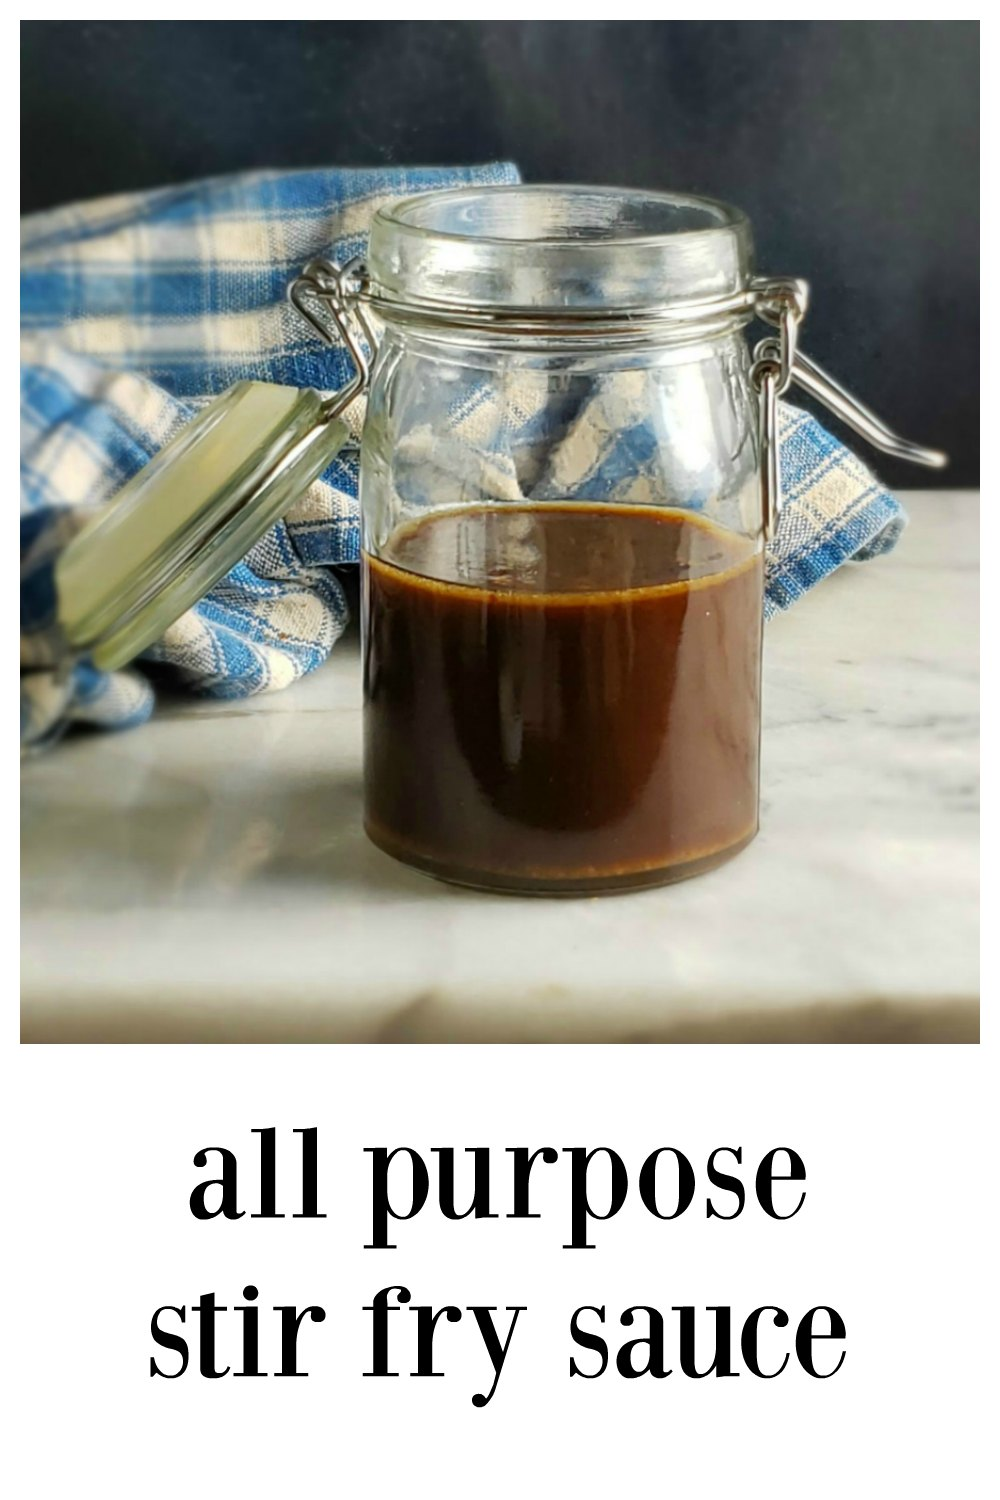 All Purpose Stir Fry Sauce - perfect to mix up & store in the fridge for any stir fry ready in minutes! Great flavor, easy to tweak. #StirFry #StirFrySauce #MakeAheadStirFry #AllPurposeStirFrySauce #CopycatStirFrySauce